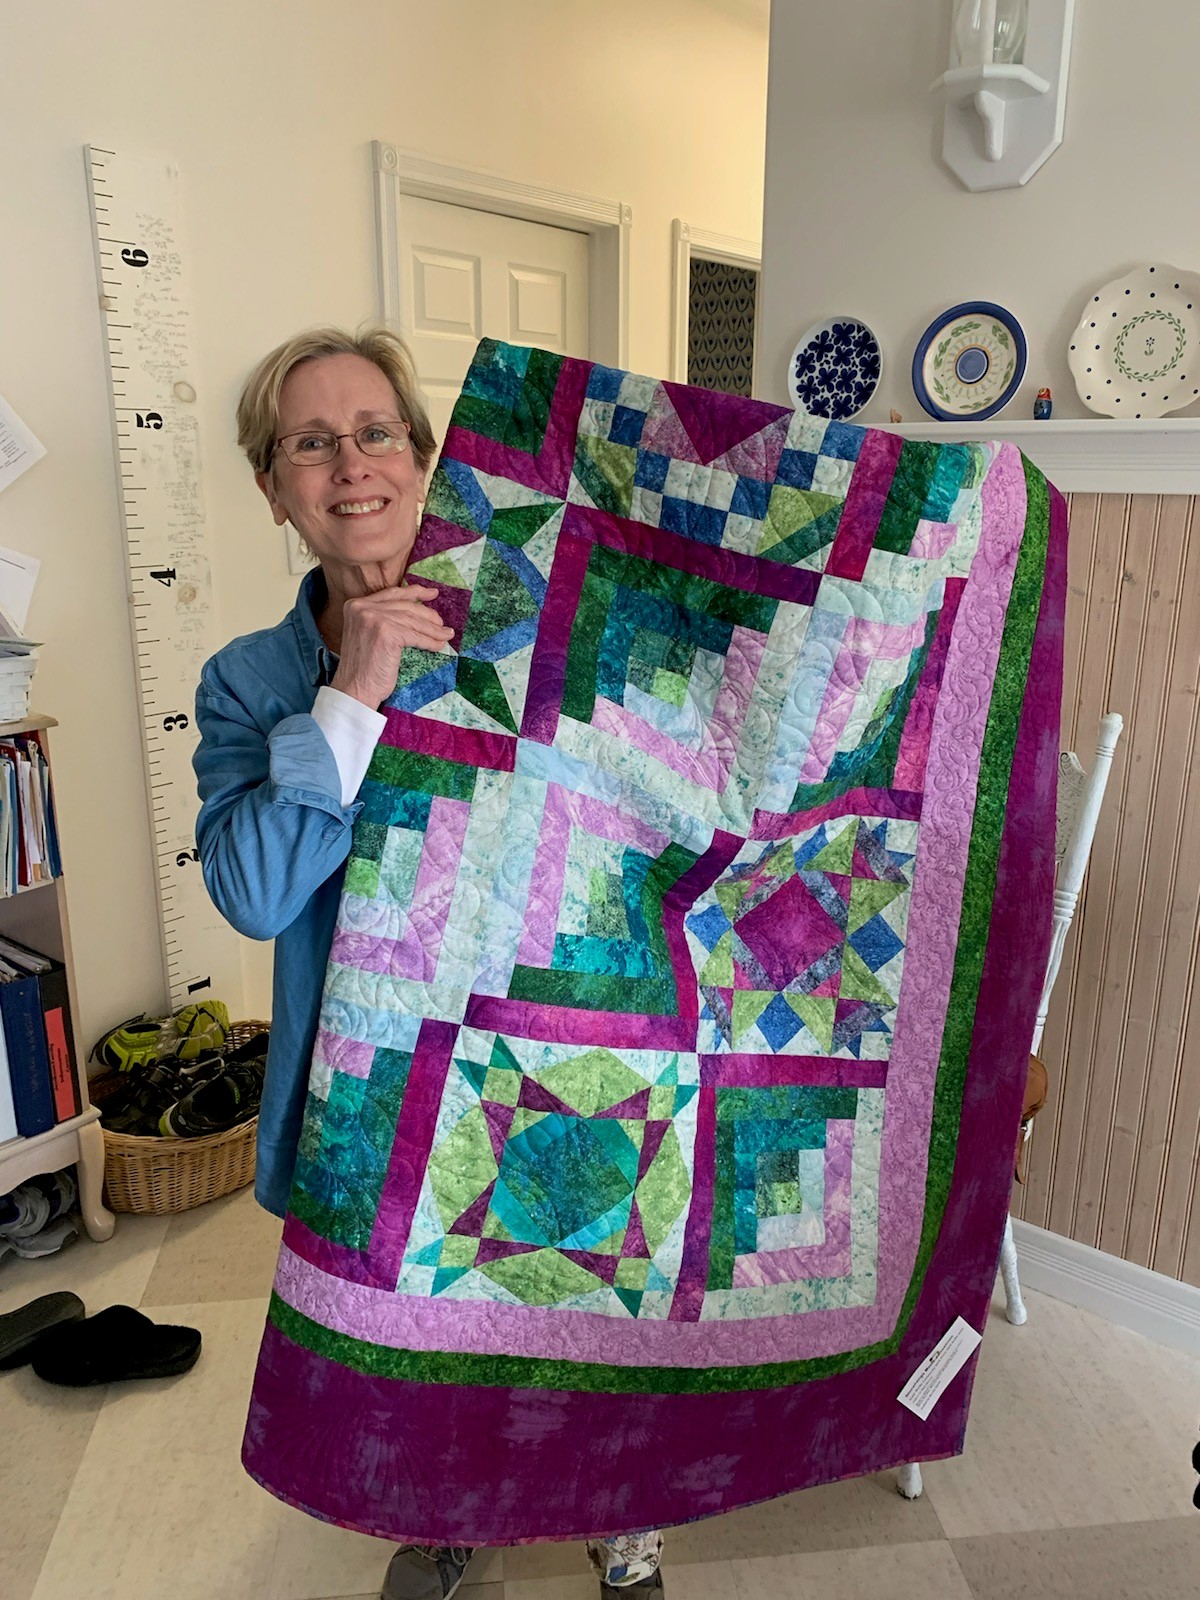 2020 winner of the Outer Banks Community Quilt Show raffle at Roanoke Island Festival Park